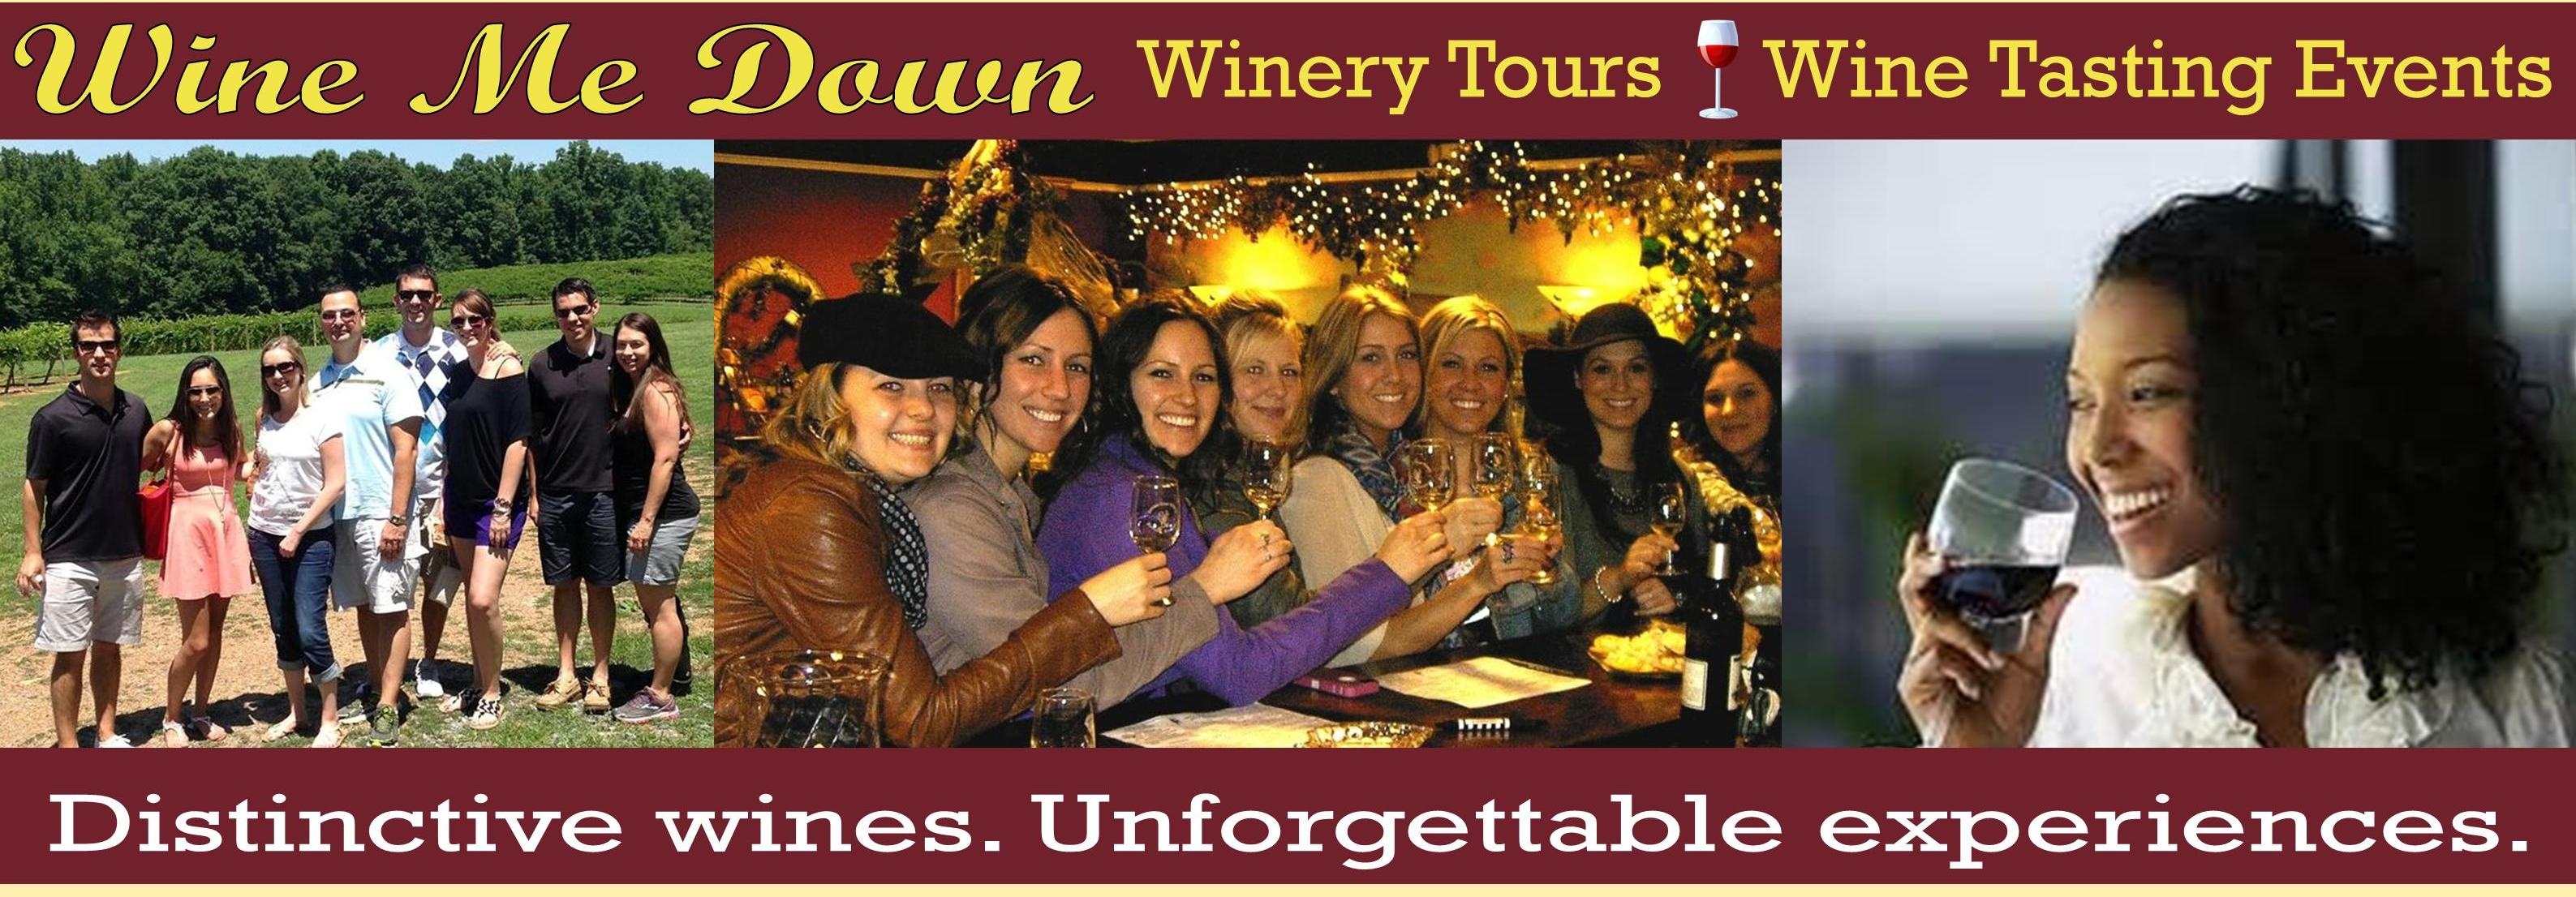 Top Wine Tasting Winery Tours - Baltimore, Charlotte, Columbus, Nashville